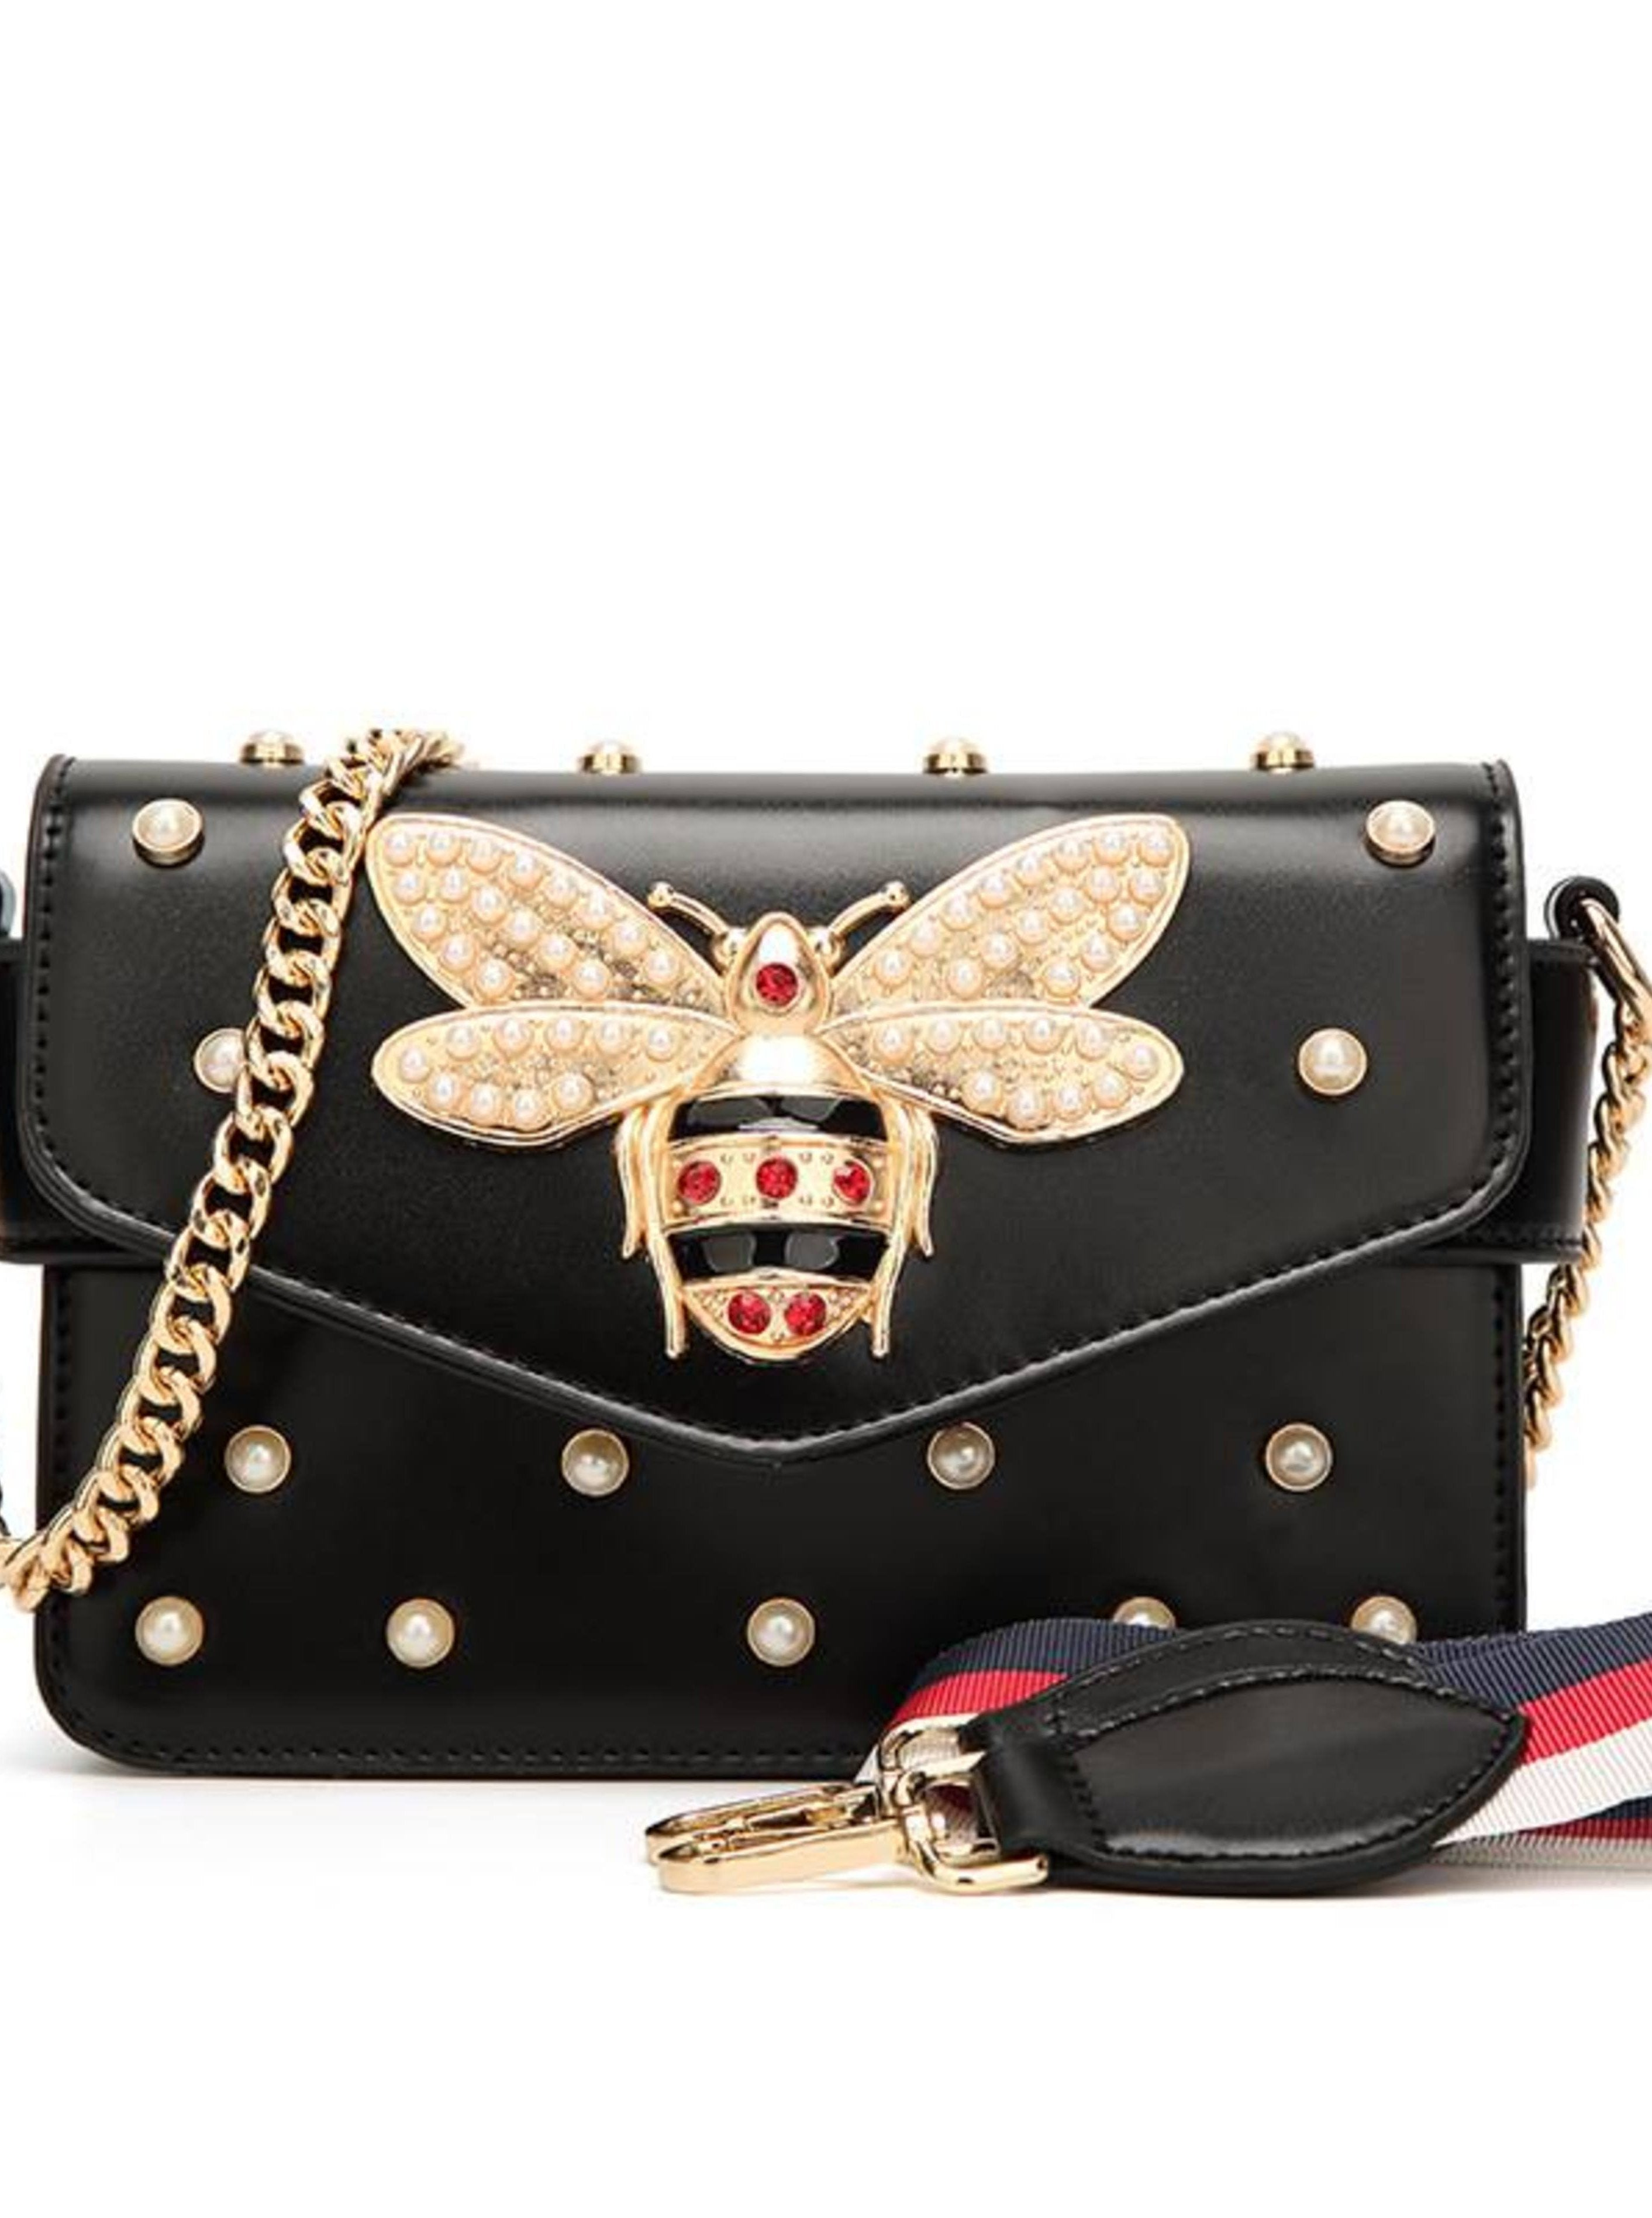 BUTTERFLY EMBROIDERED LEATHER CLUTCH, Bags, Luna Soul, Luna Soul